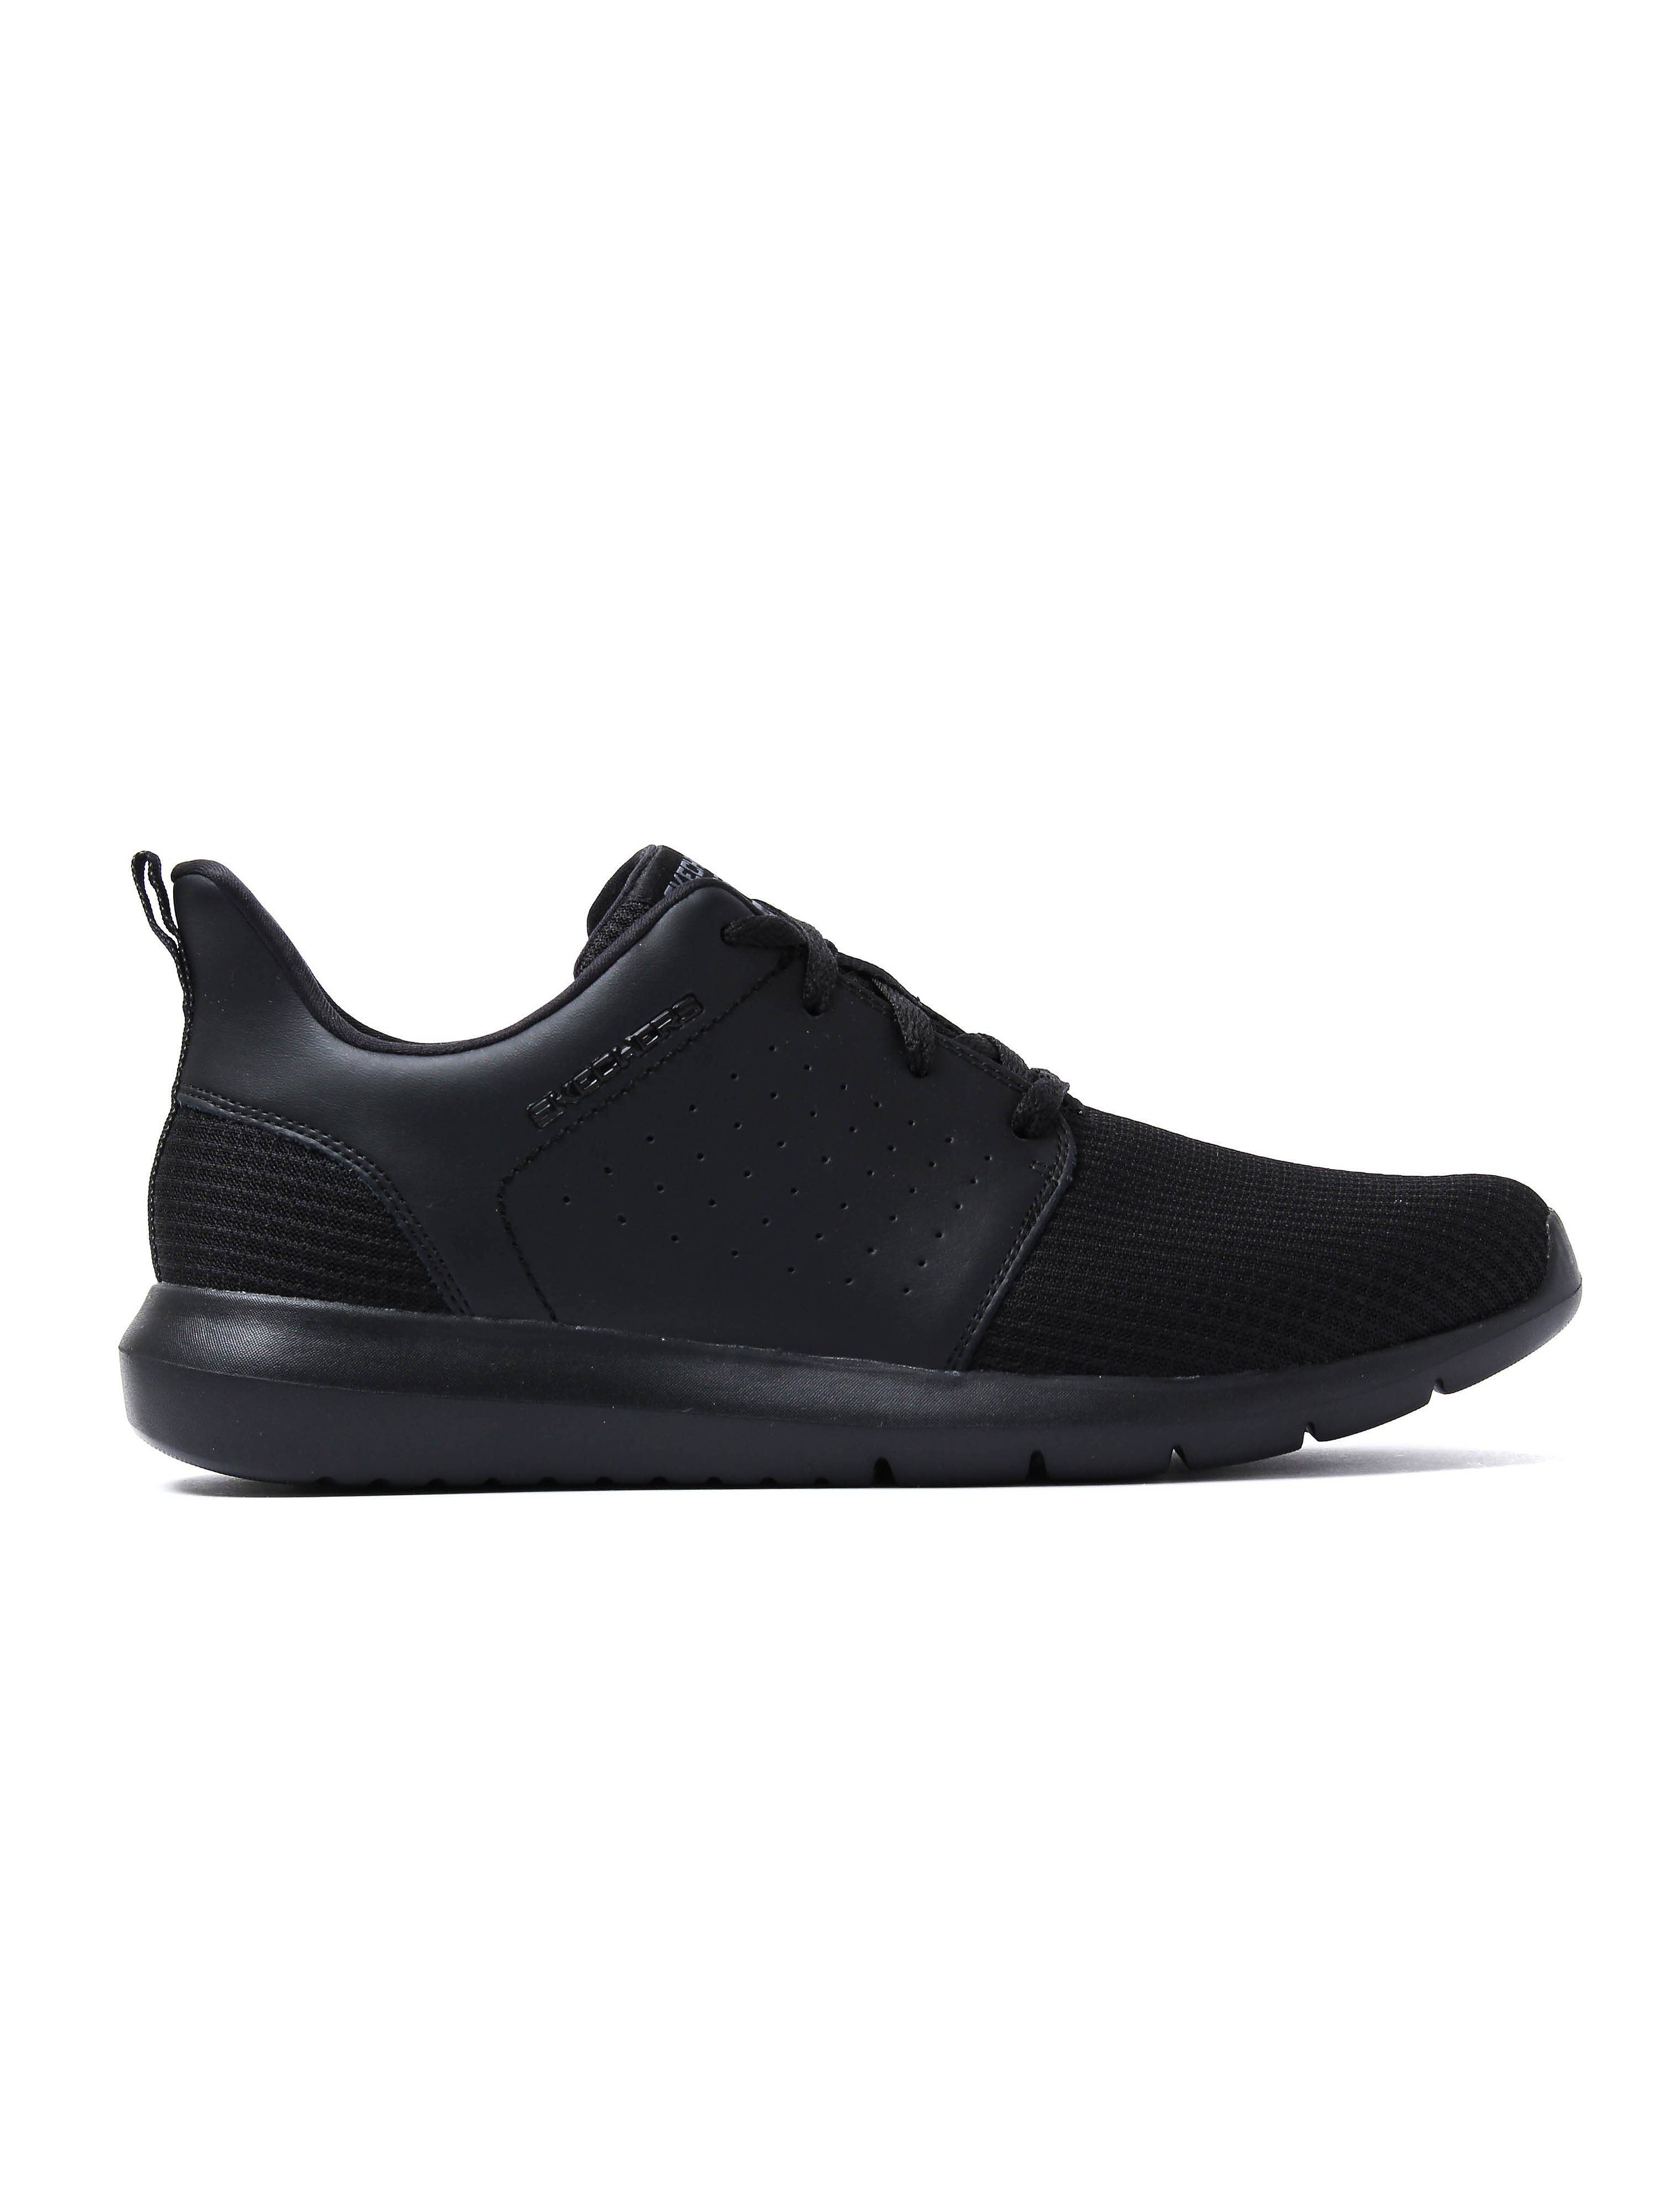 Skechers Men's Fore Flex Trainers - Black